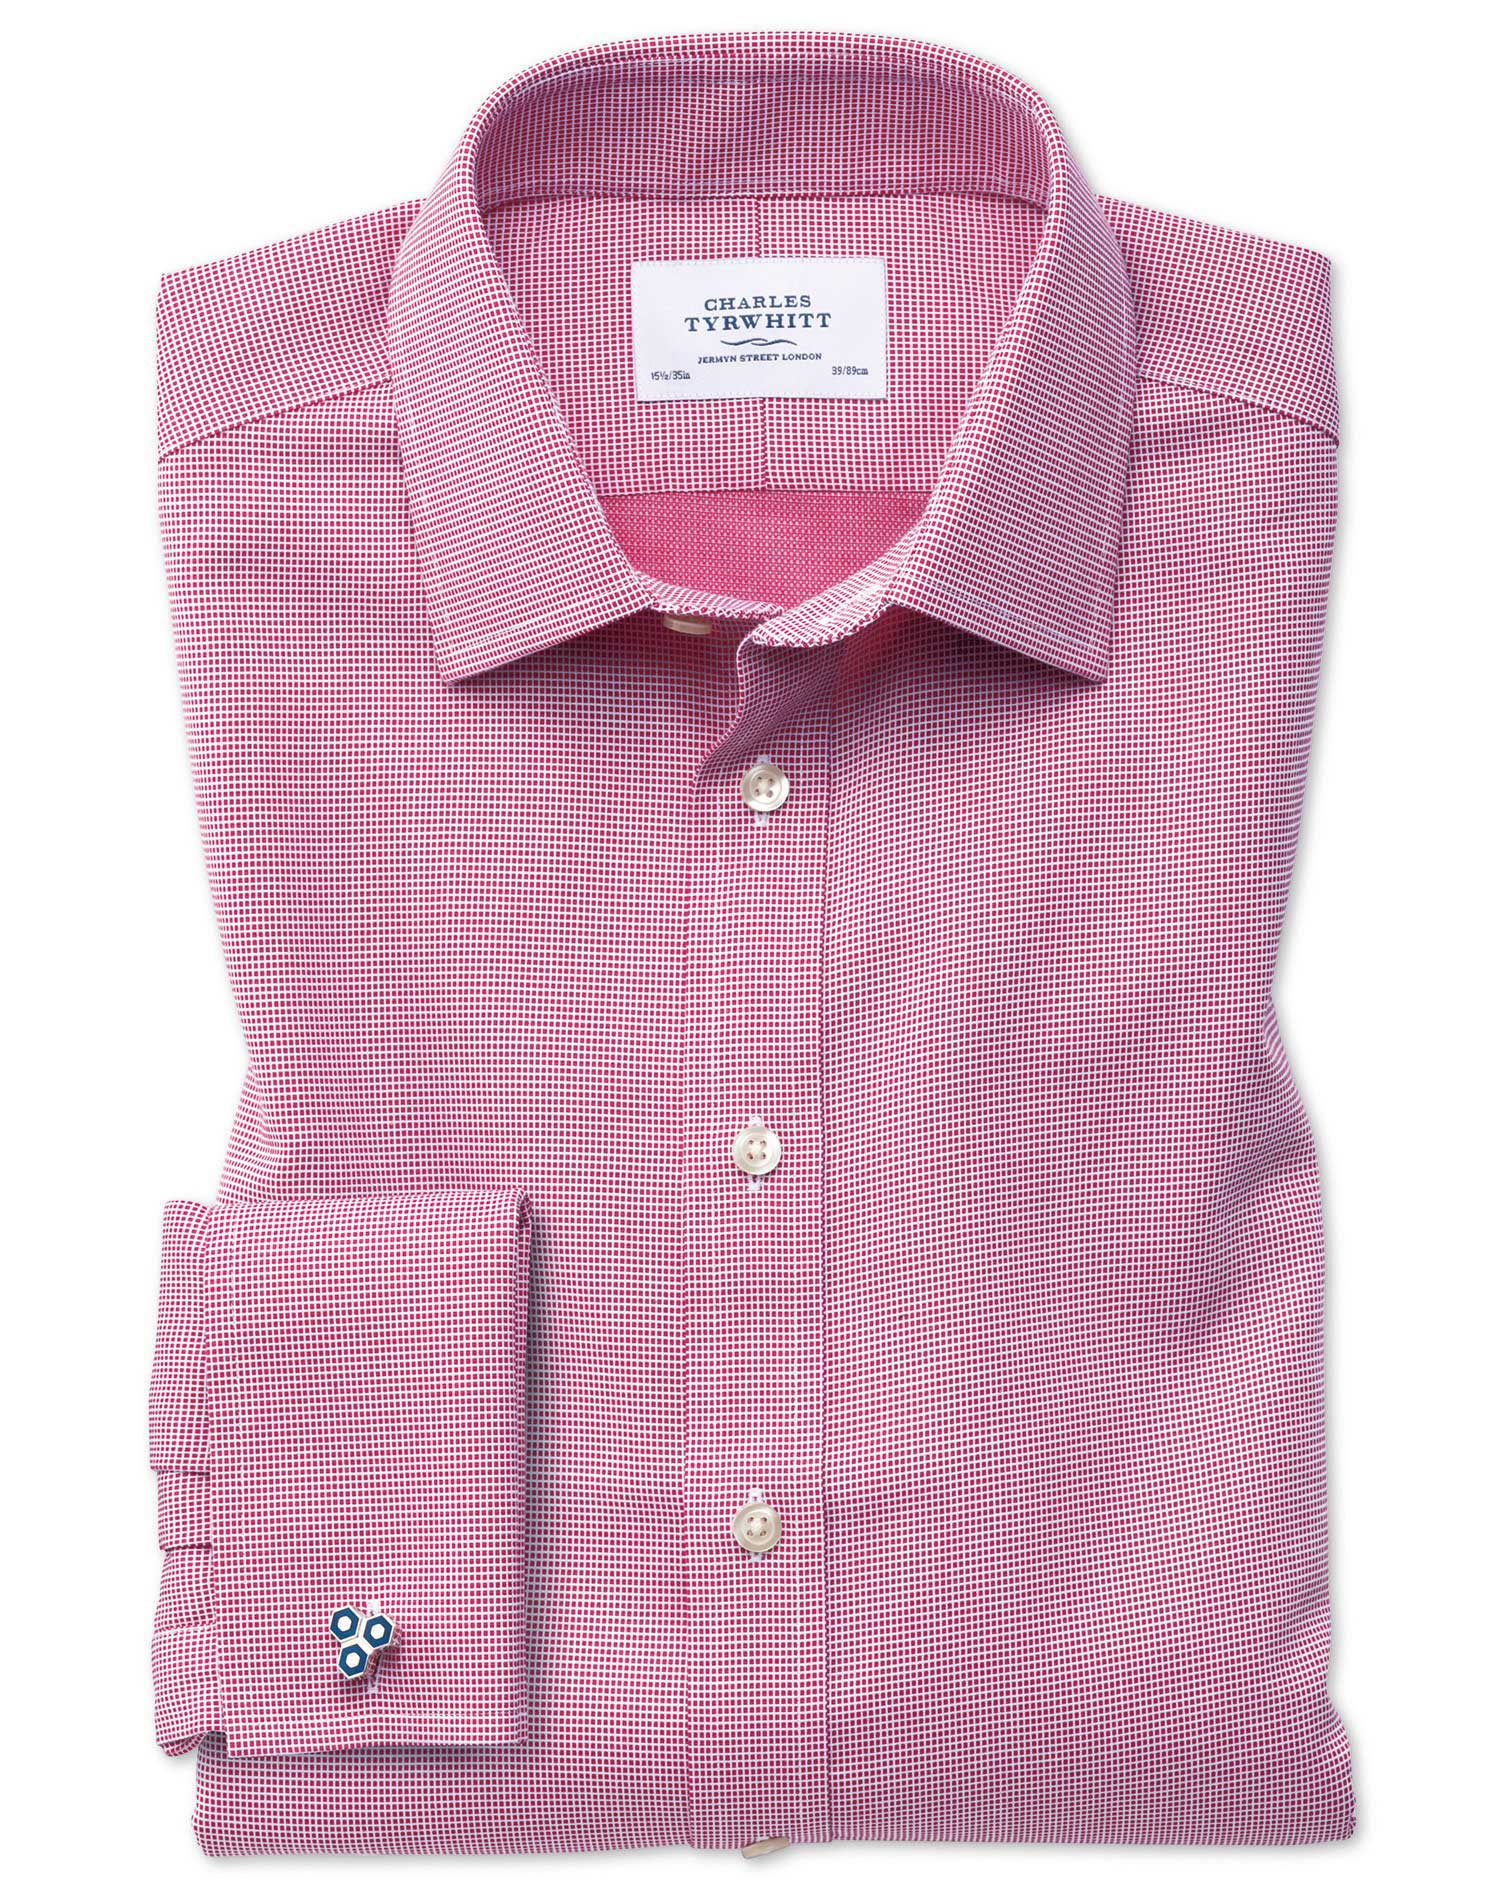 Extra Slim Fit Non-Iron Square Weave Magenta Cotton Formal Shirt Double Cuff Size 16.5/35 by Charles